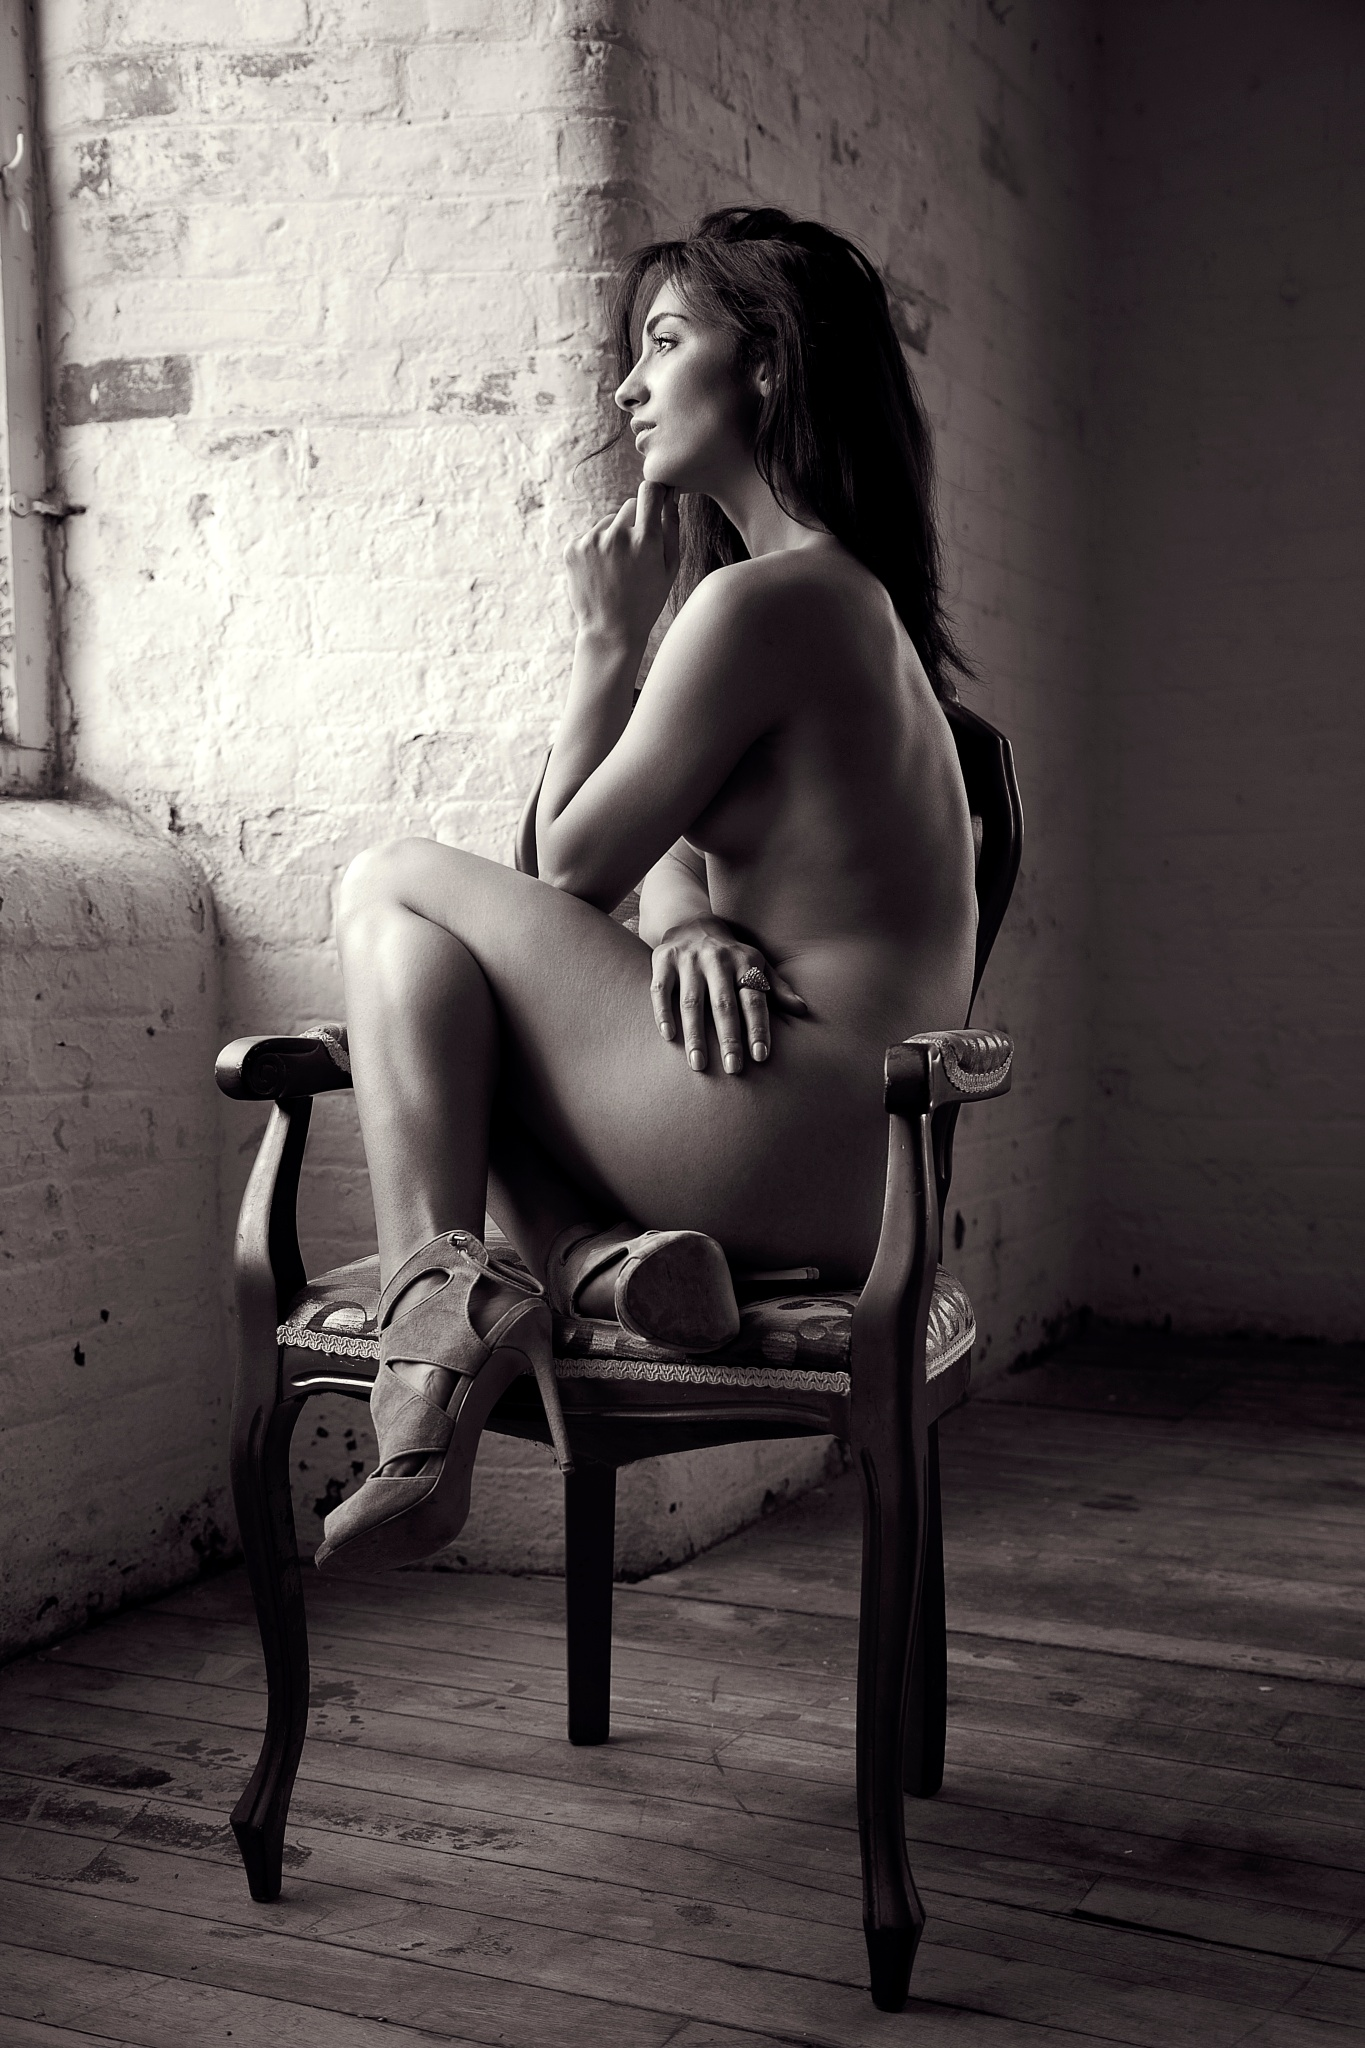 Nude, sitting in the window by NickJamesPhotography